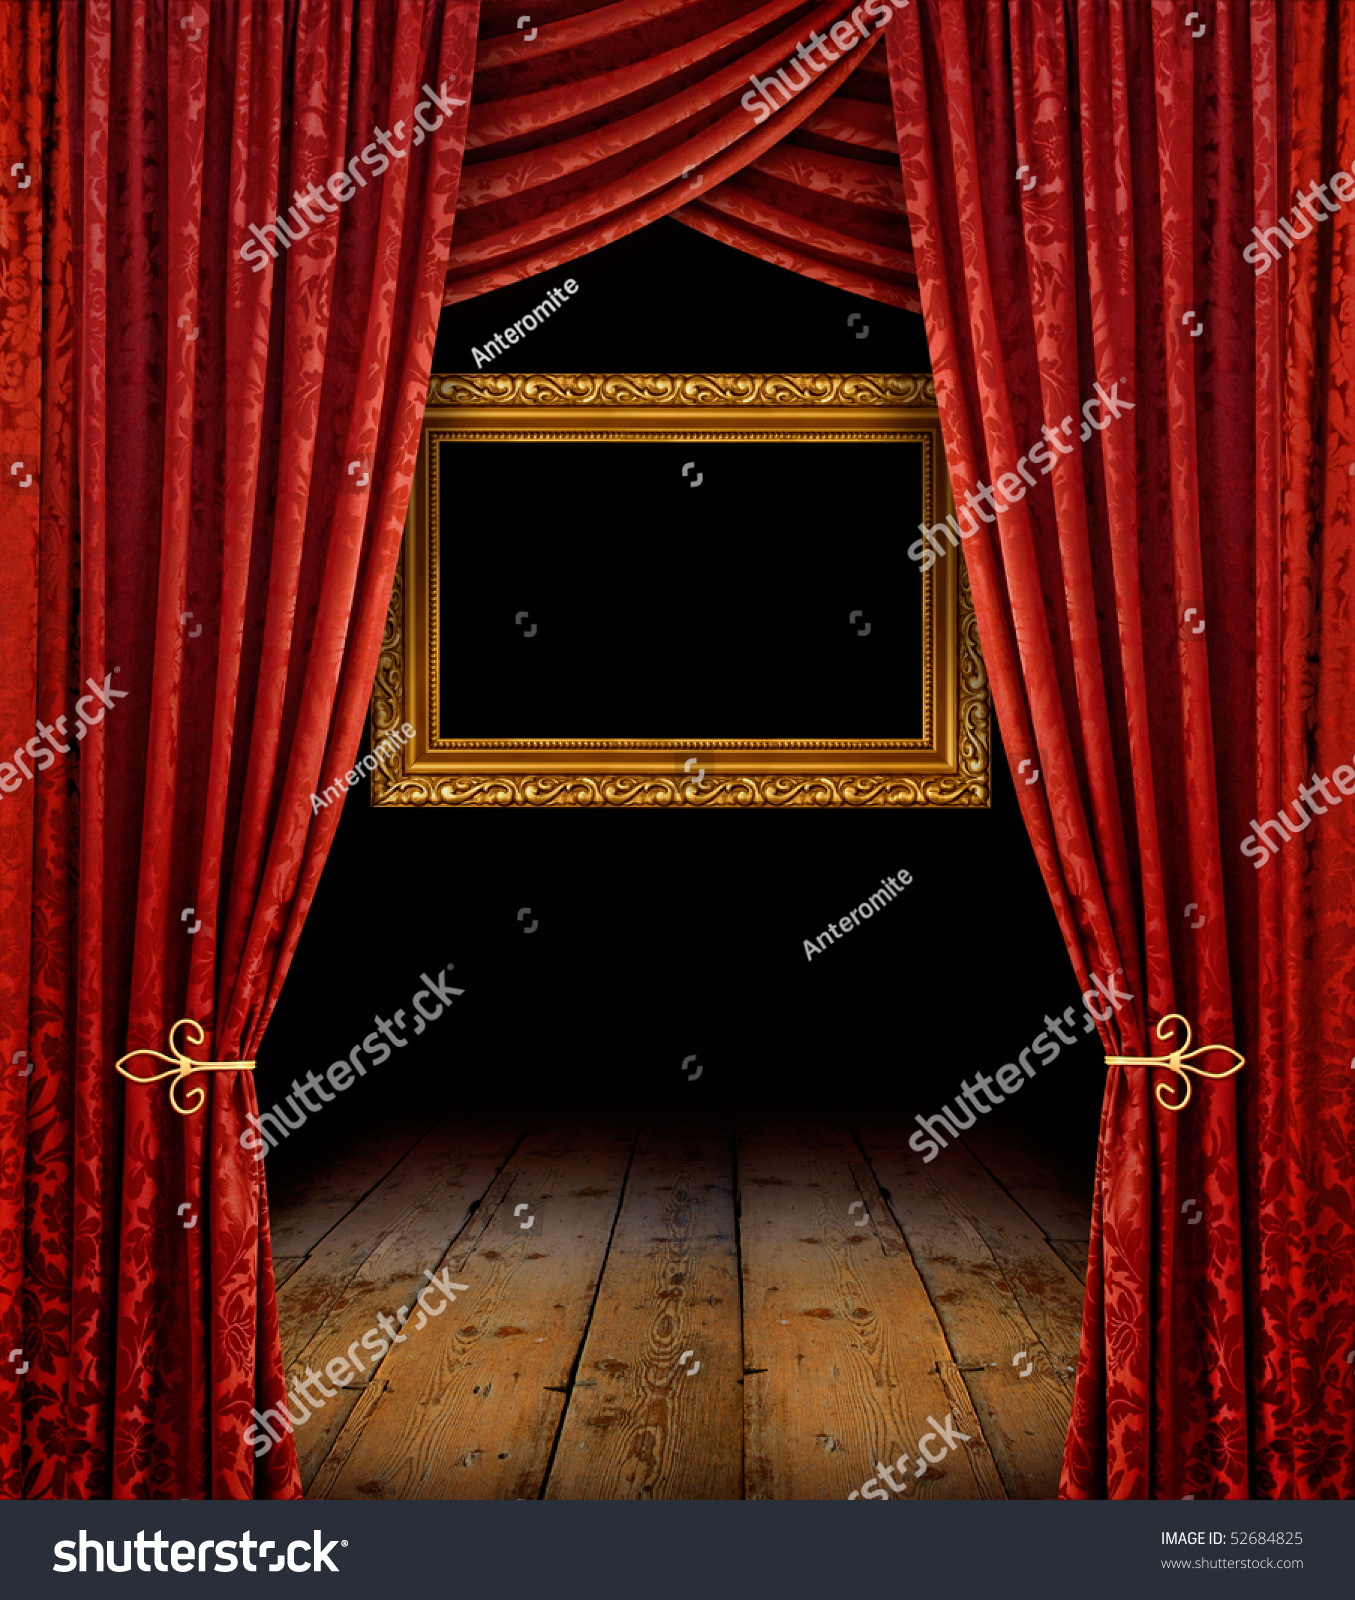 Theater curtains download free vector art stock graphics amp images - Red Stage Curtains Reveal Golden Frame And Old Wooden Floor